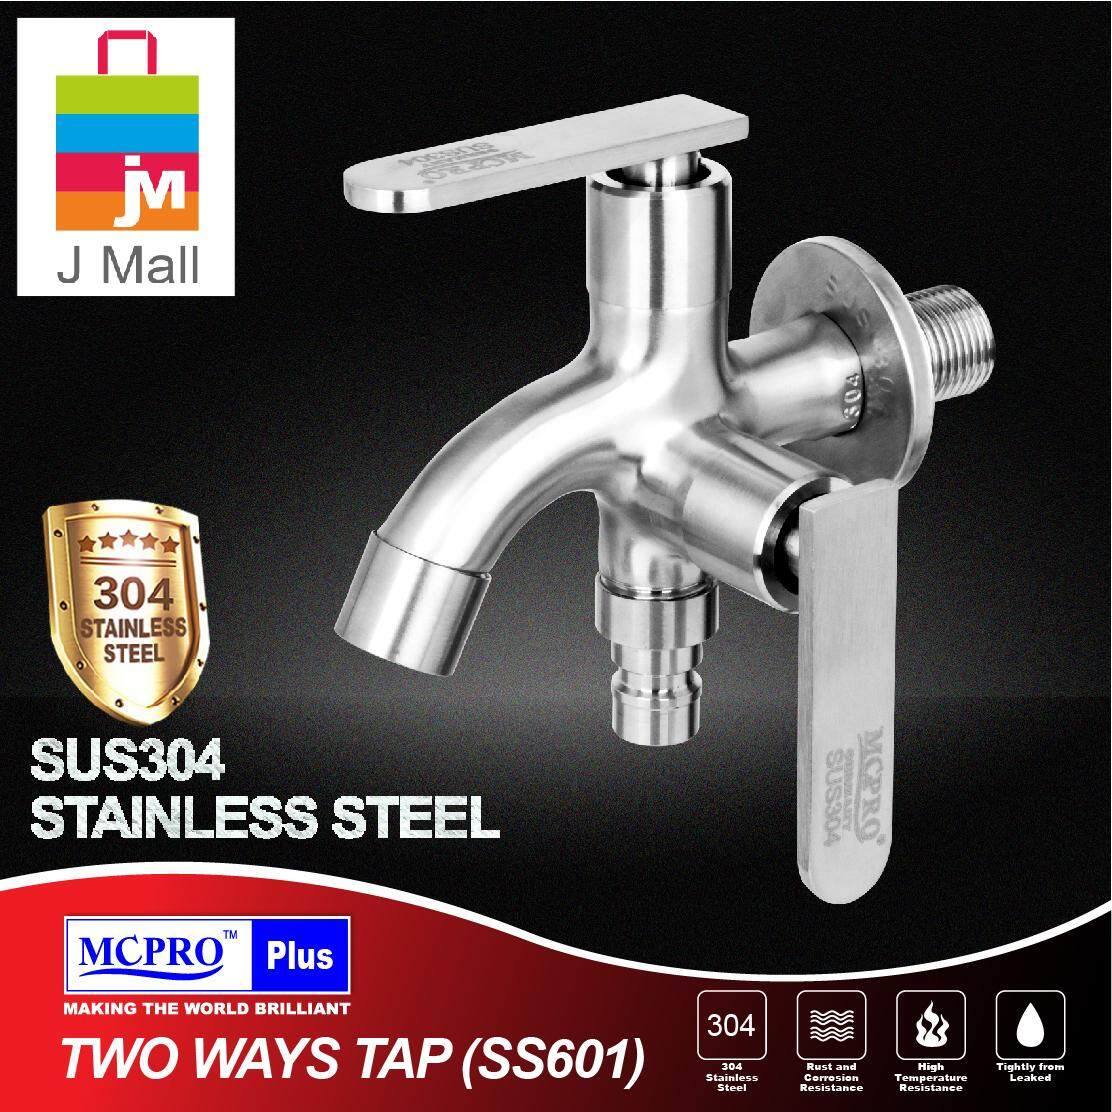 MCPRO Plus Stainless Steel SUS 304 BATHROOM/ WASHING MACHINE TWO WAY WATER TAP (SS601)